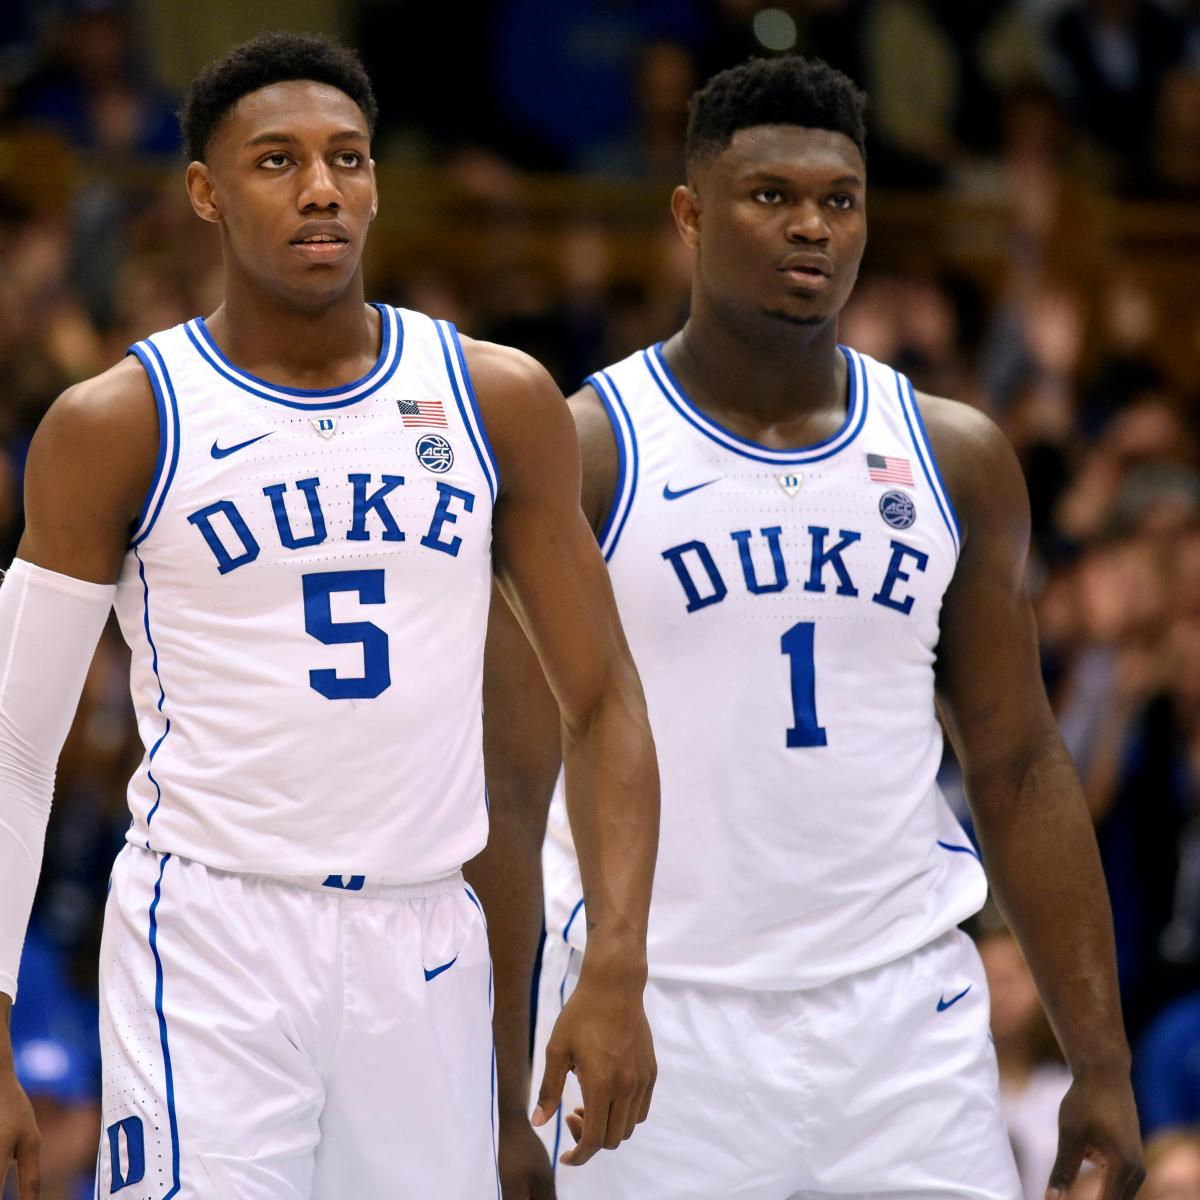 019beac2939 Ranking the 25 Best Players in the 2019 NCAA Tournament